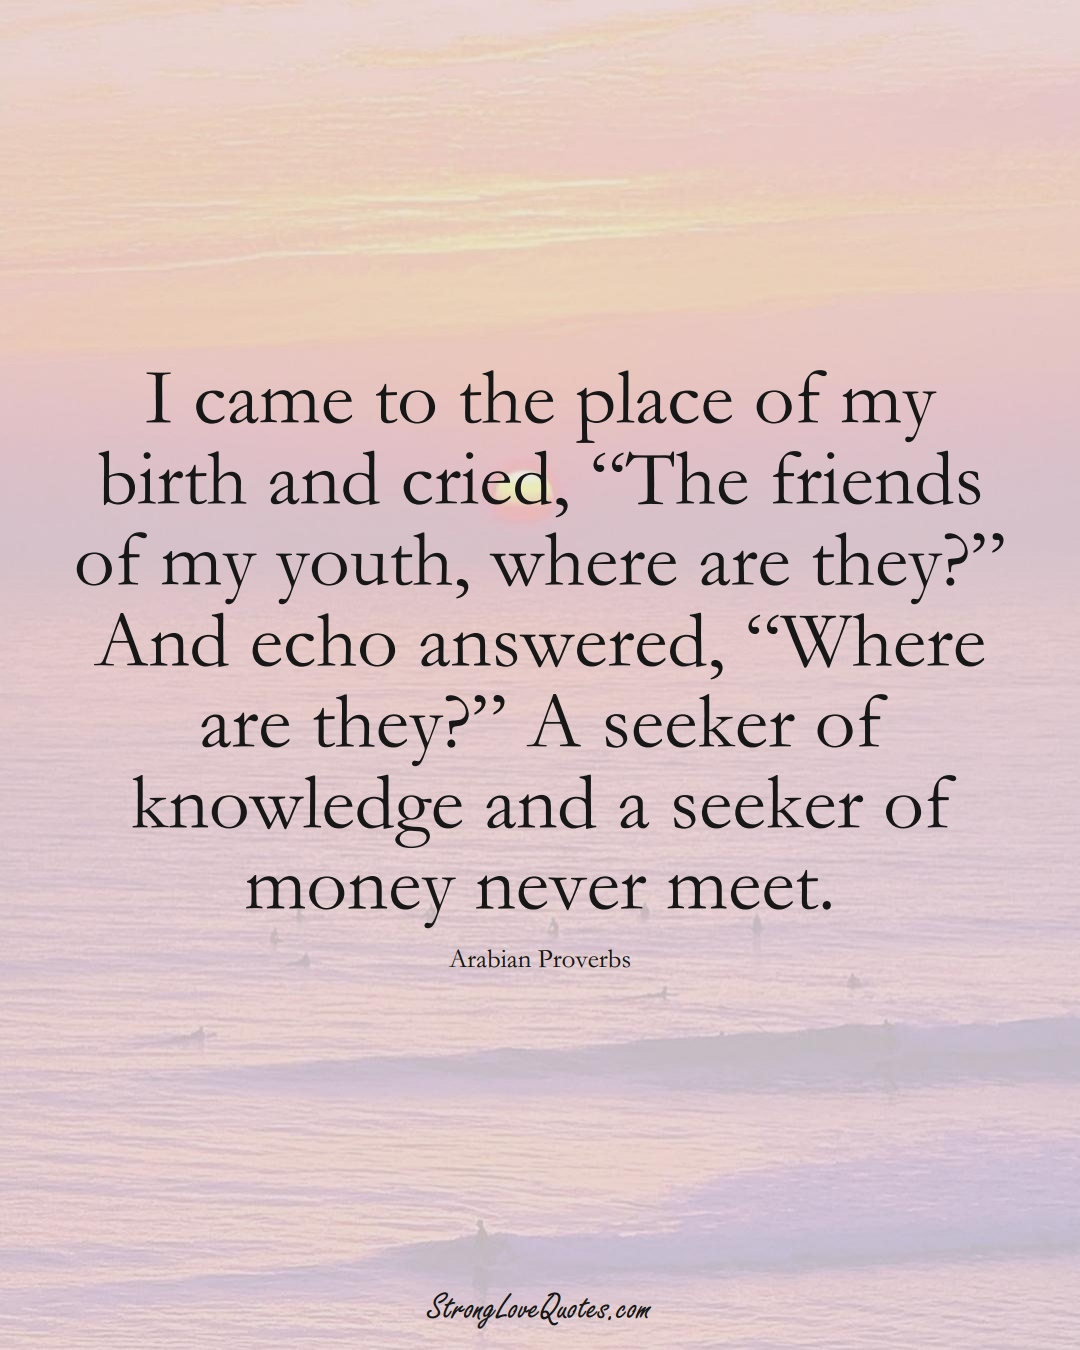 """I came to the place of my birth and cried, """"The friends of my youth, where are they?"""" And echo answered, """"Where are they?"""" A seeker of knowledge and a seeker of money never meet. (Arabian Sayings);  #aVarietyofCulturesSayings"""